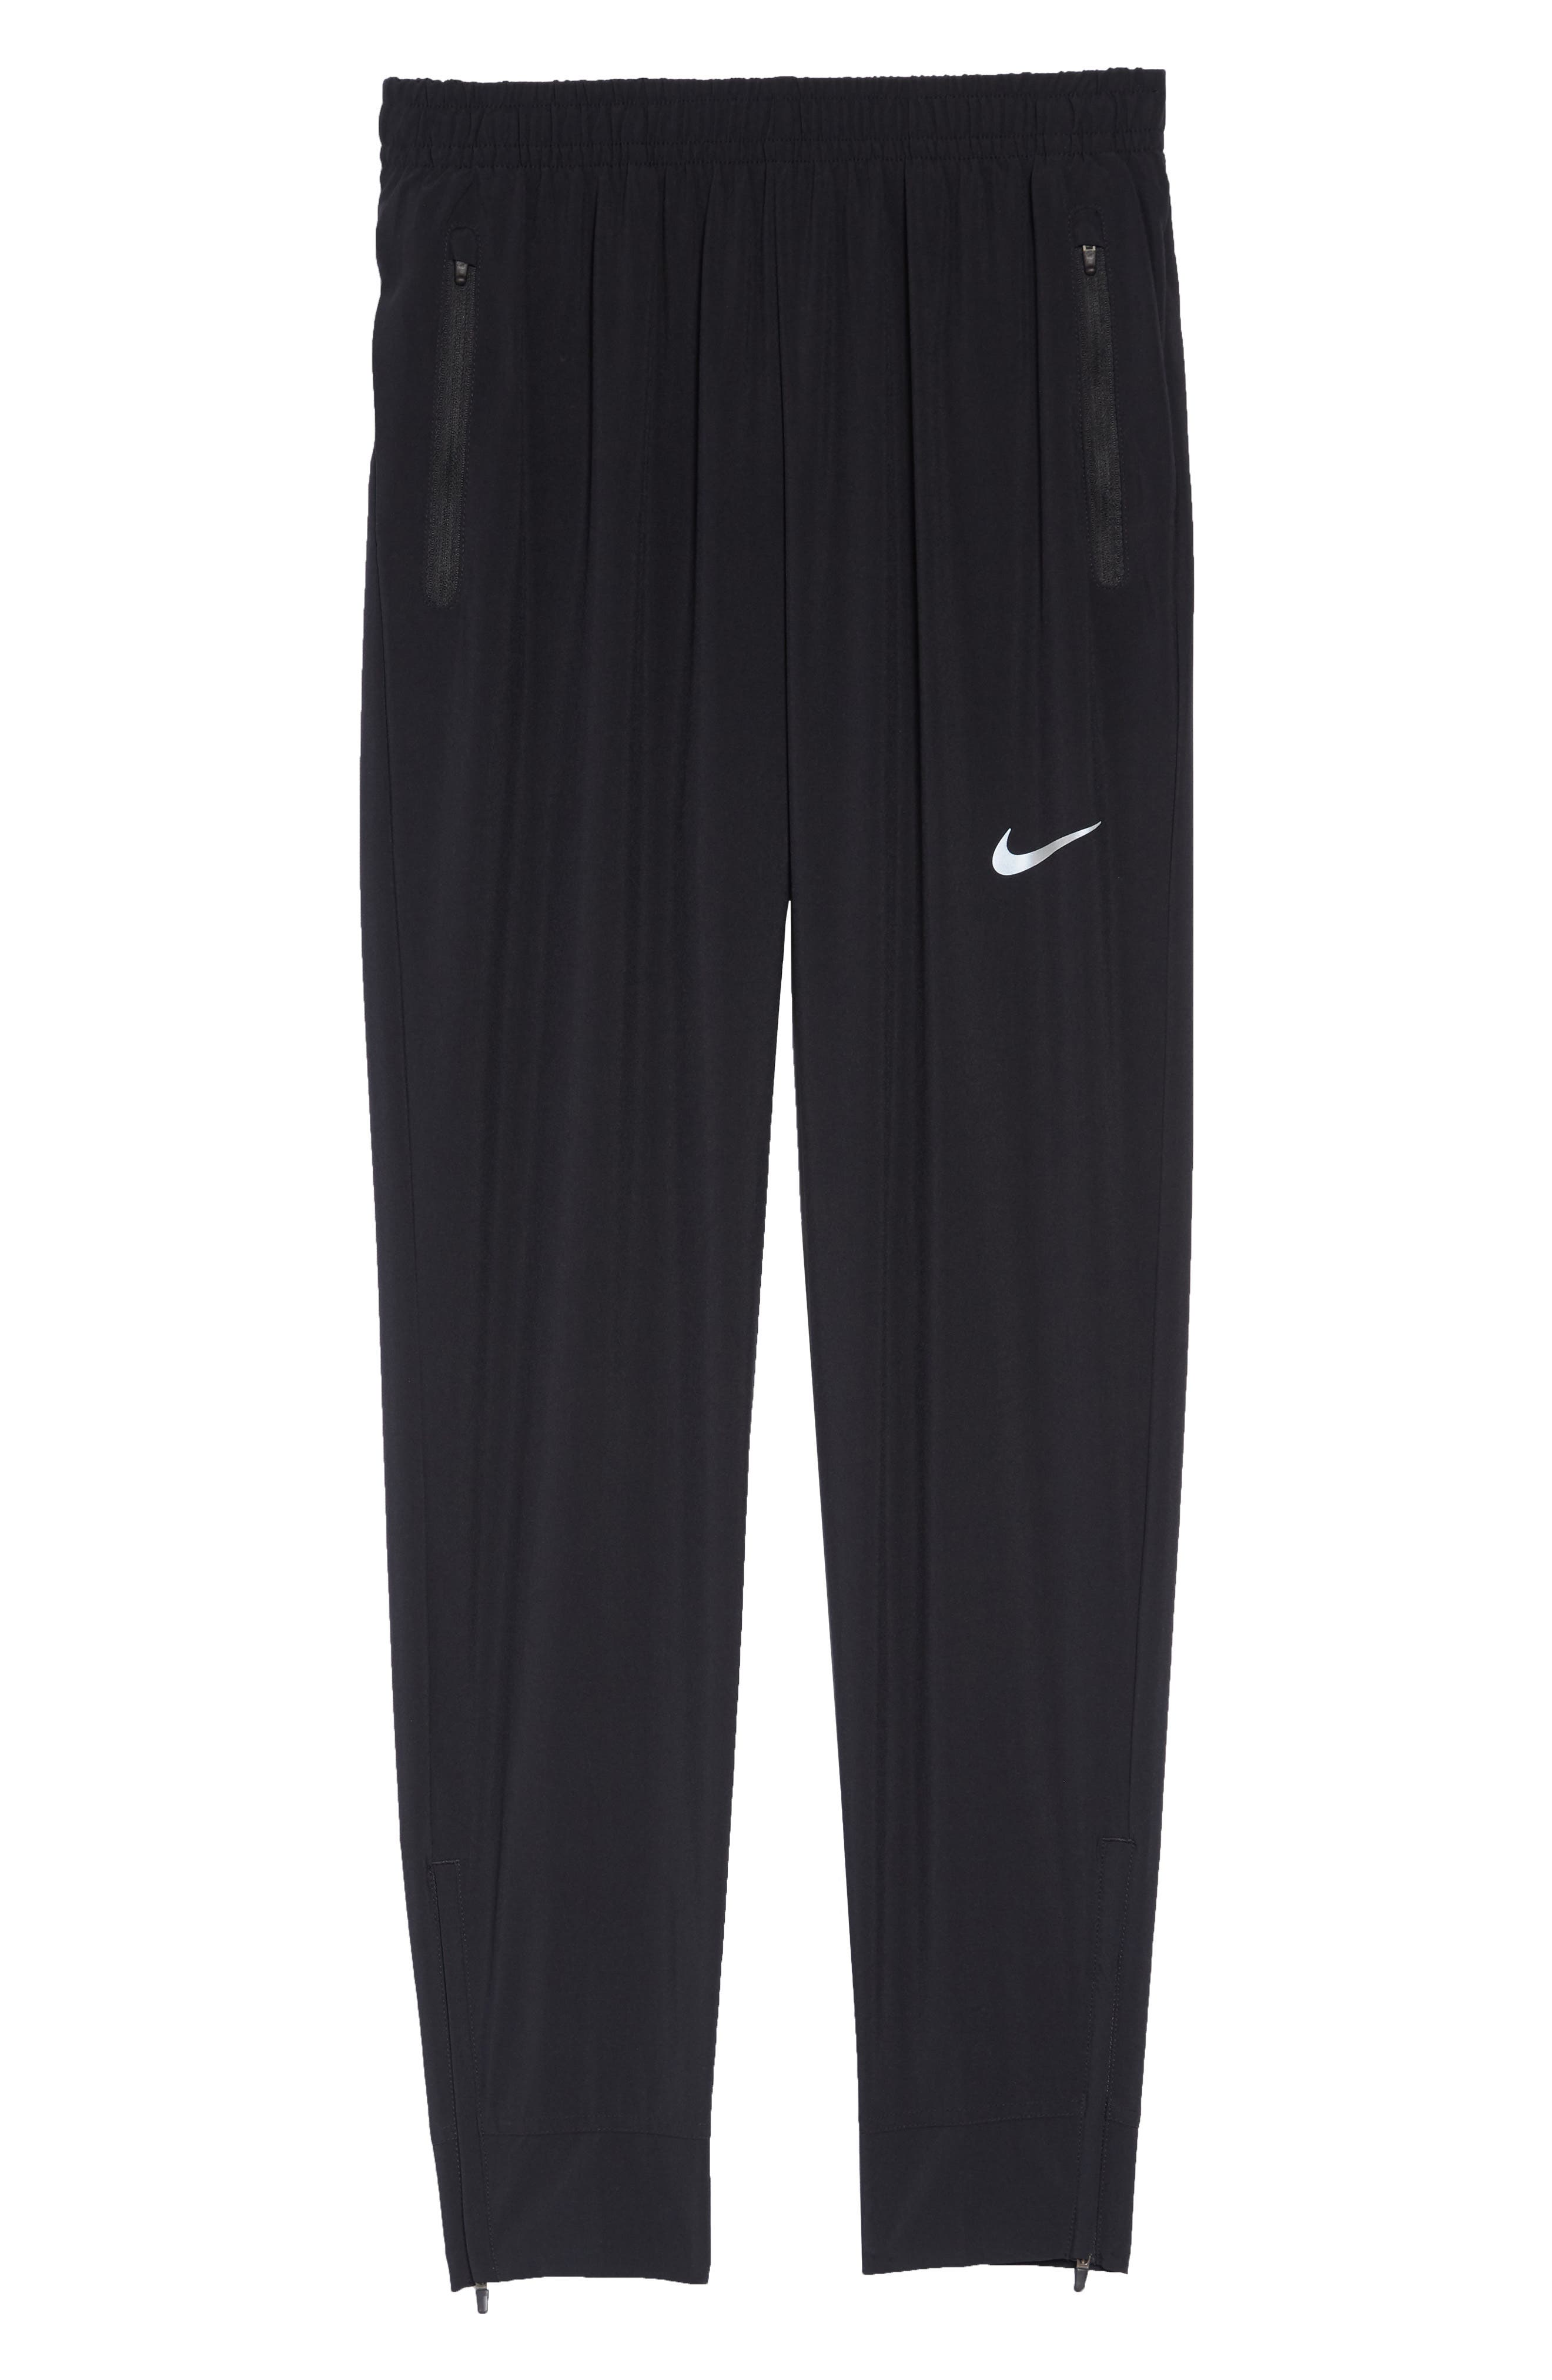 NIKE, Essential Woven Track Pants, Alternate thumbnail 7, color, BLACK